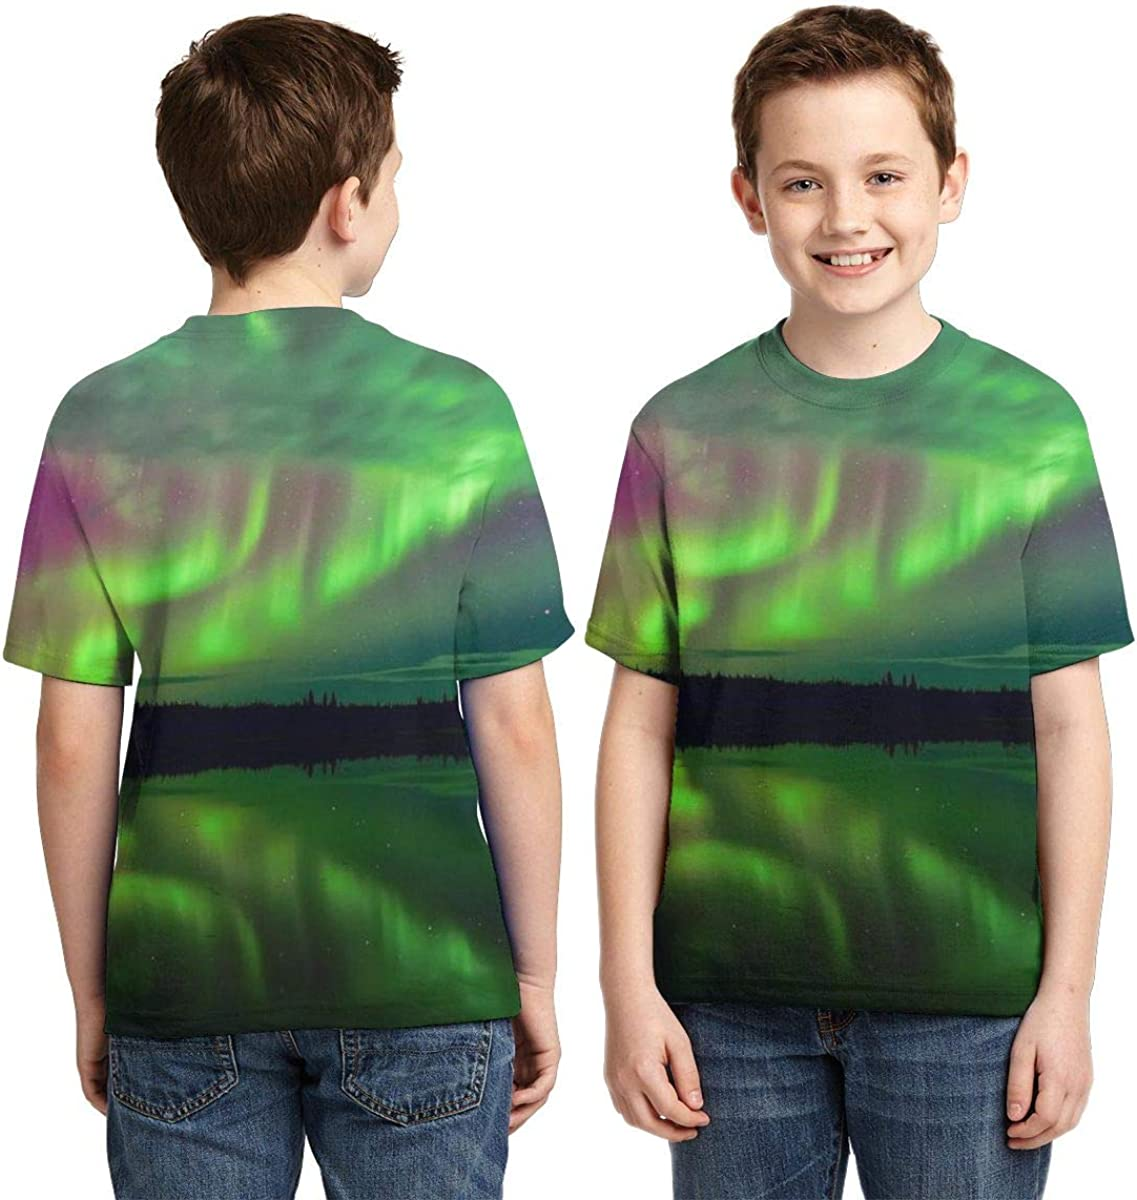 Summer Tops for Boys Youth T-Shirts Aurora Landscape Full Printed Short Sleeve Crew Neck Tees